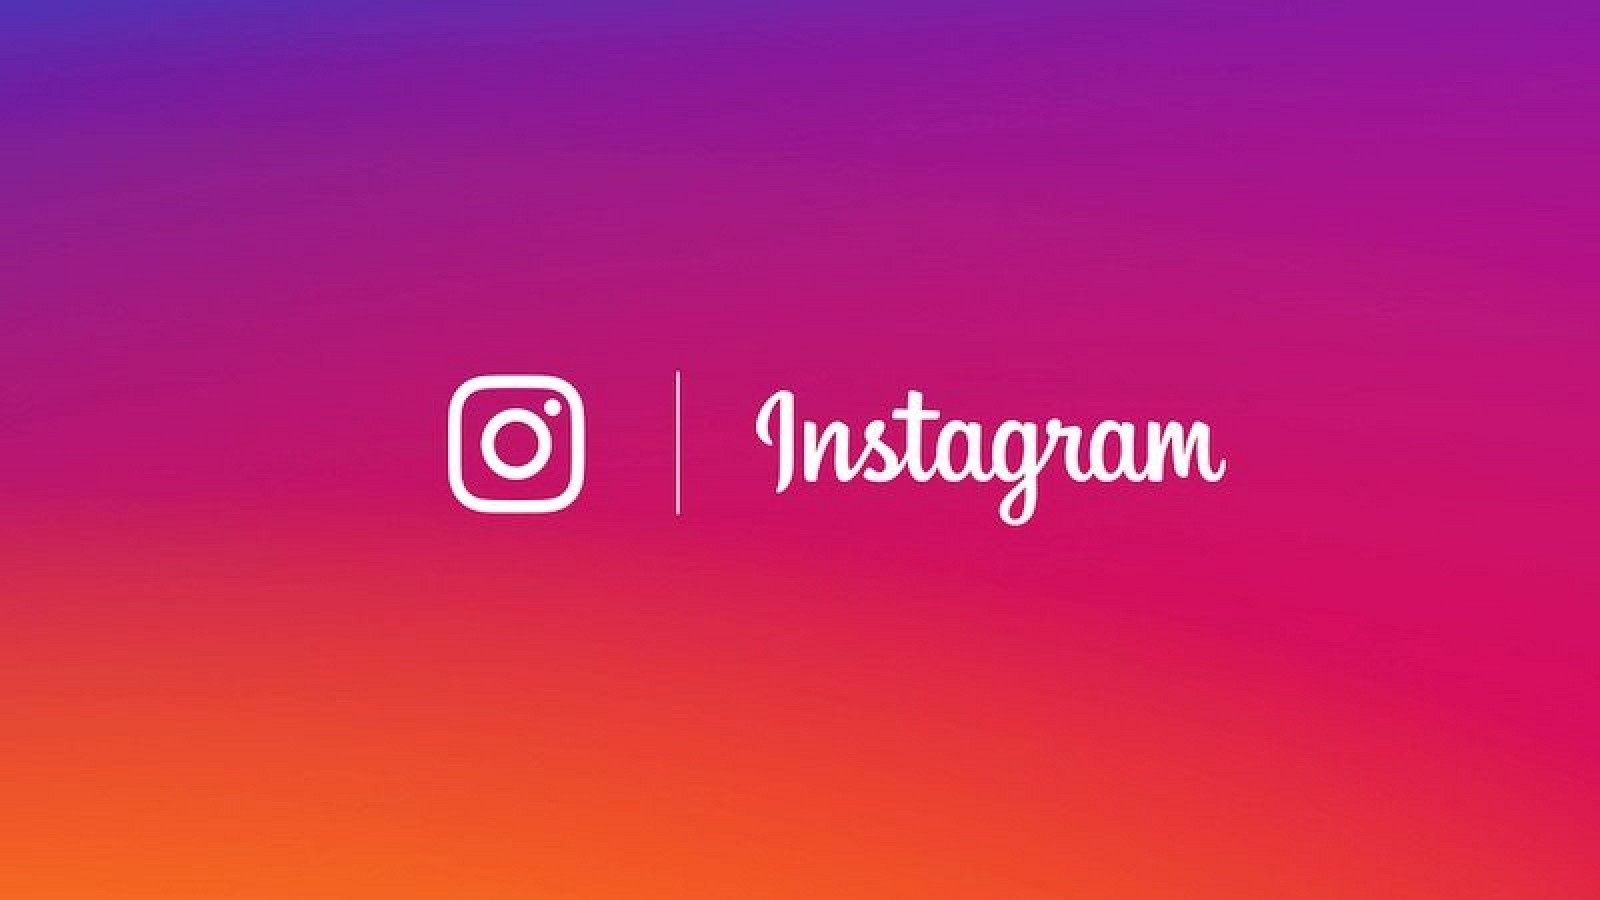 Instagram Adds Support for Wide Color and Live Photos